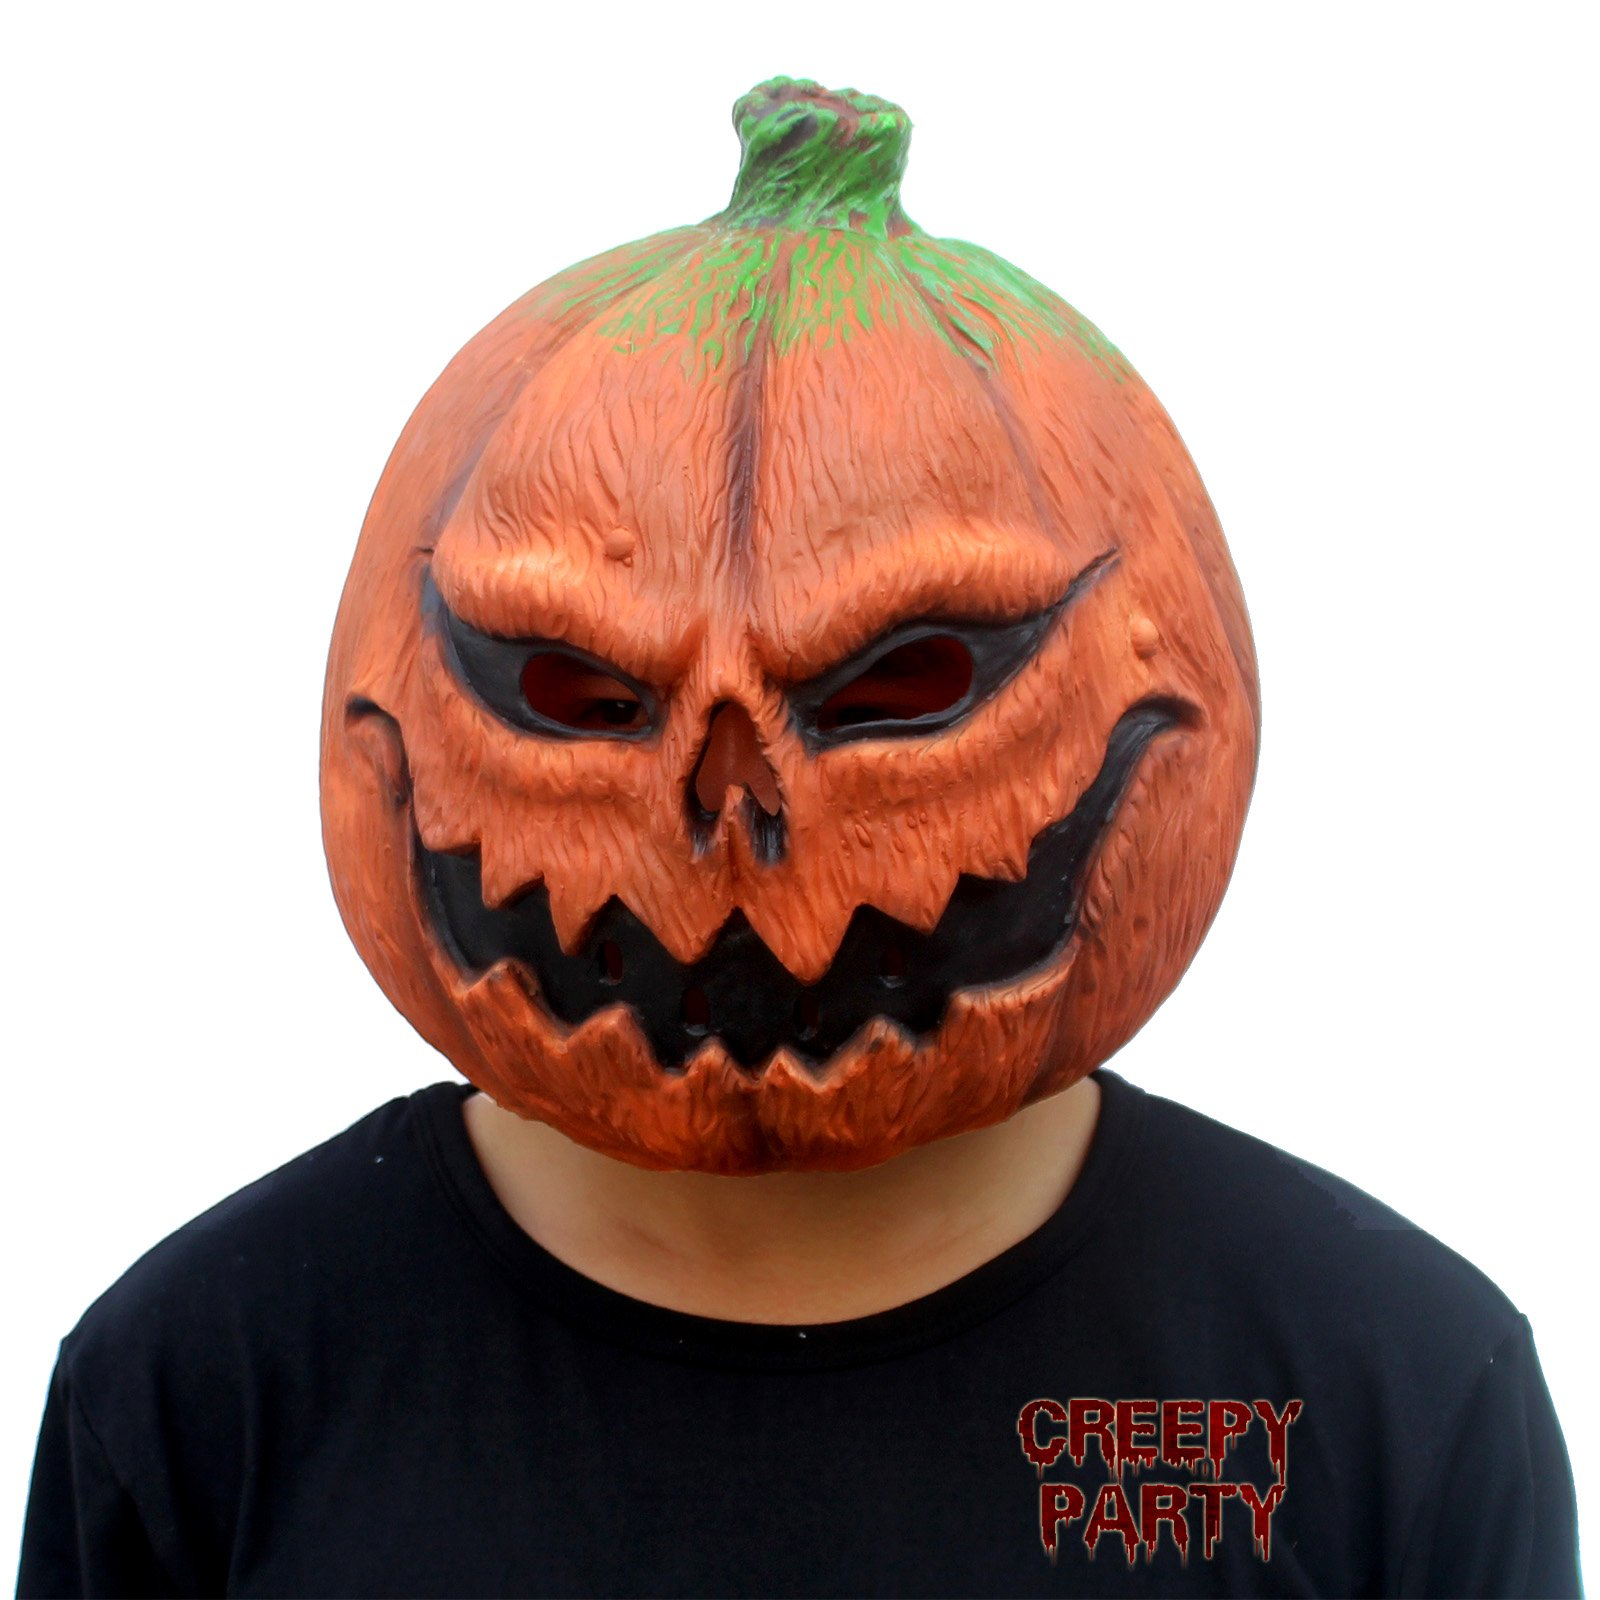 CreepyParty Deluxe Novelty Halloween Costume Party Props Latex Pumpkin Head Mask (Pumpkin) (Pumpkin Head) by Creepy Party